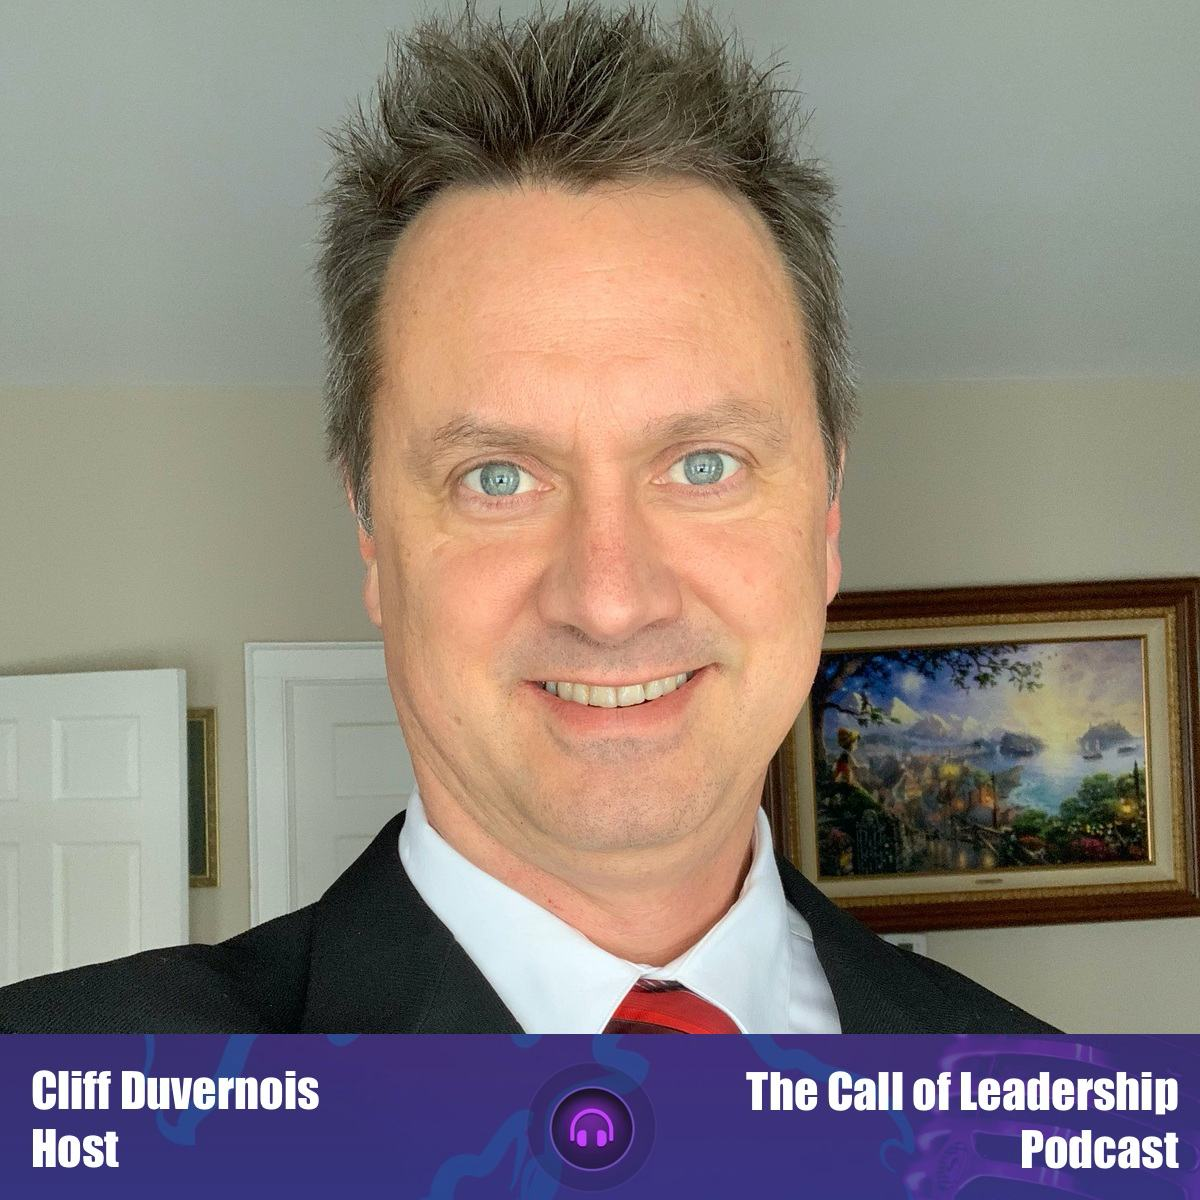 Cliff Duvernois - Choice of Leadership